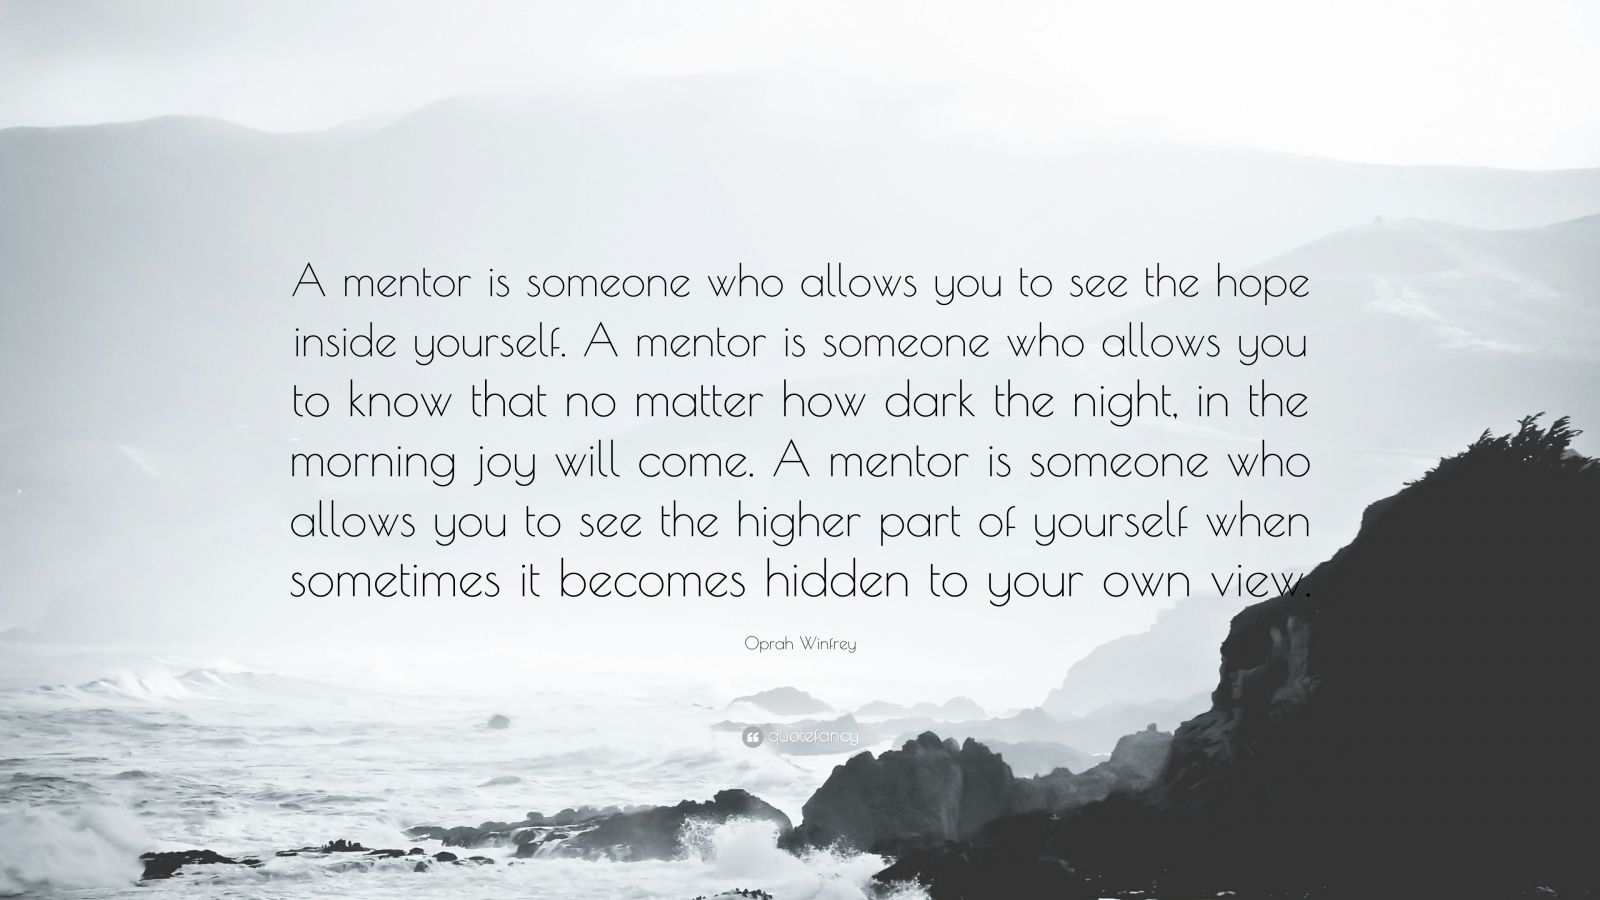 """Oprah Winfrey Quote: """"A mentor is someone who allows you to see the hope inside yourself. A mentor is someone who allows you to know that no matter how dark the night, in the morning joy will come. A mentor is someone who allows you to see the higher part of yourself when sometimes it becomes hidden to your own view."""""""